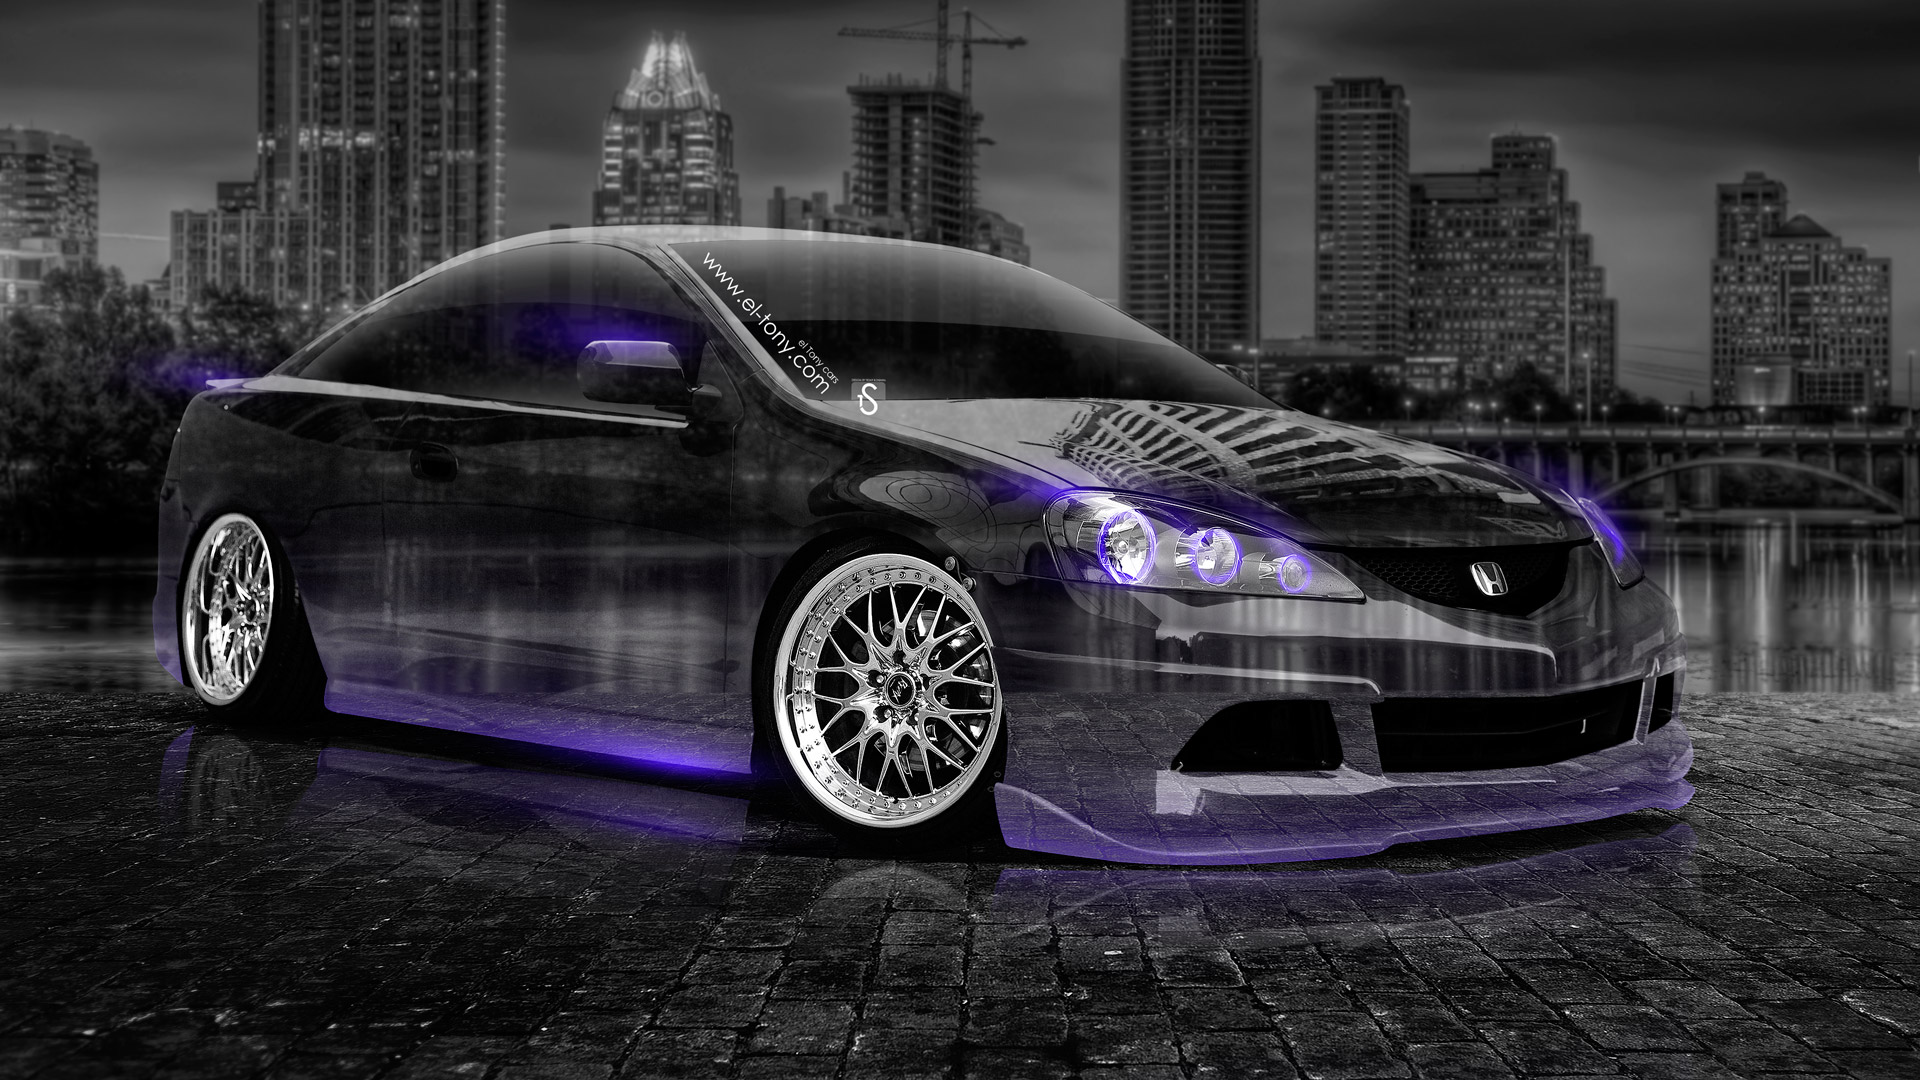 High Quality Honda Integra JDM Crystal City Car 2014